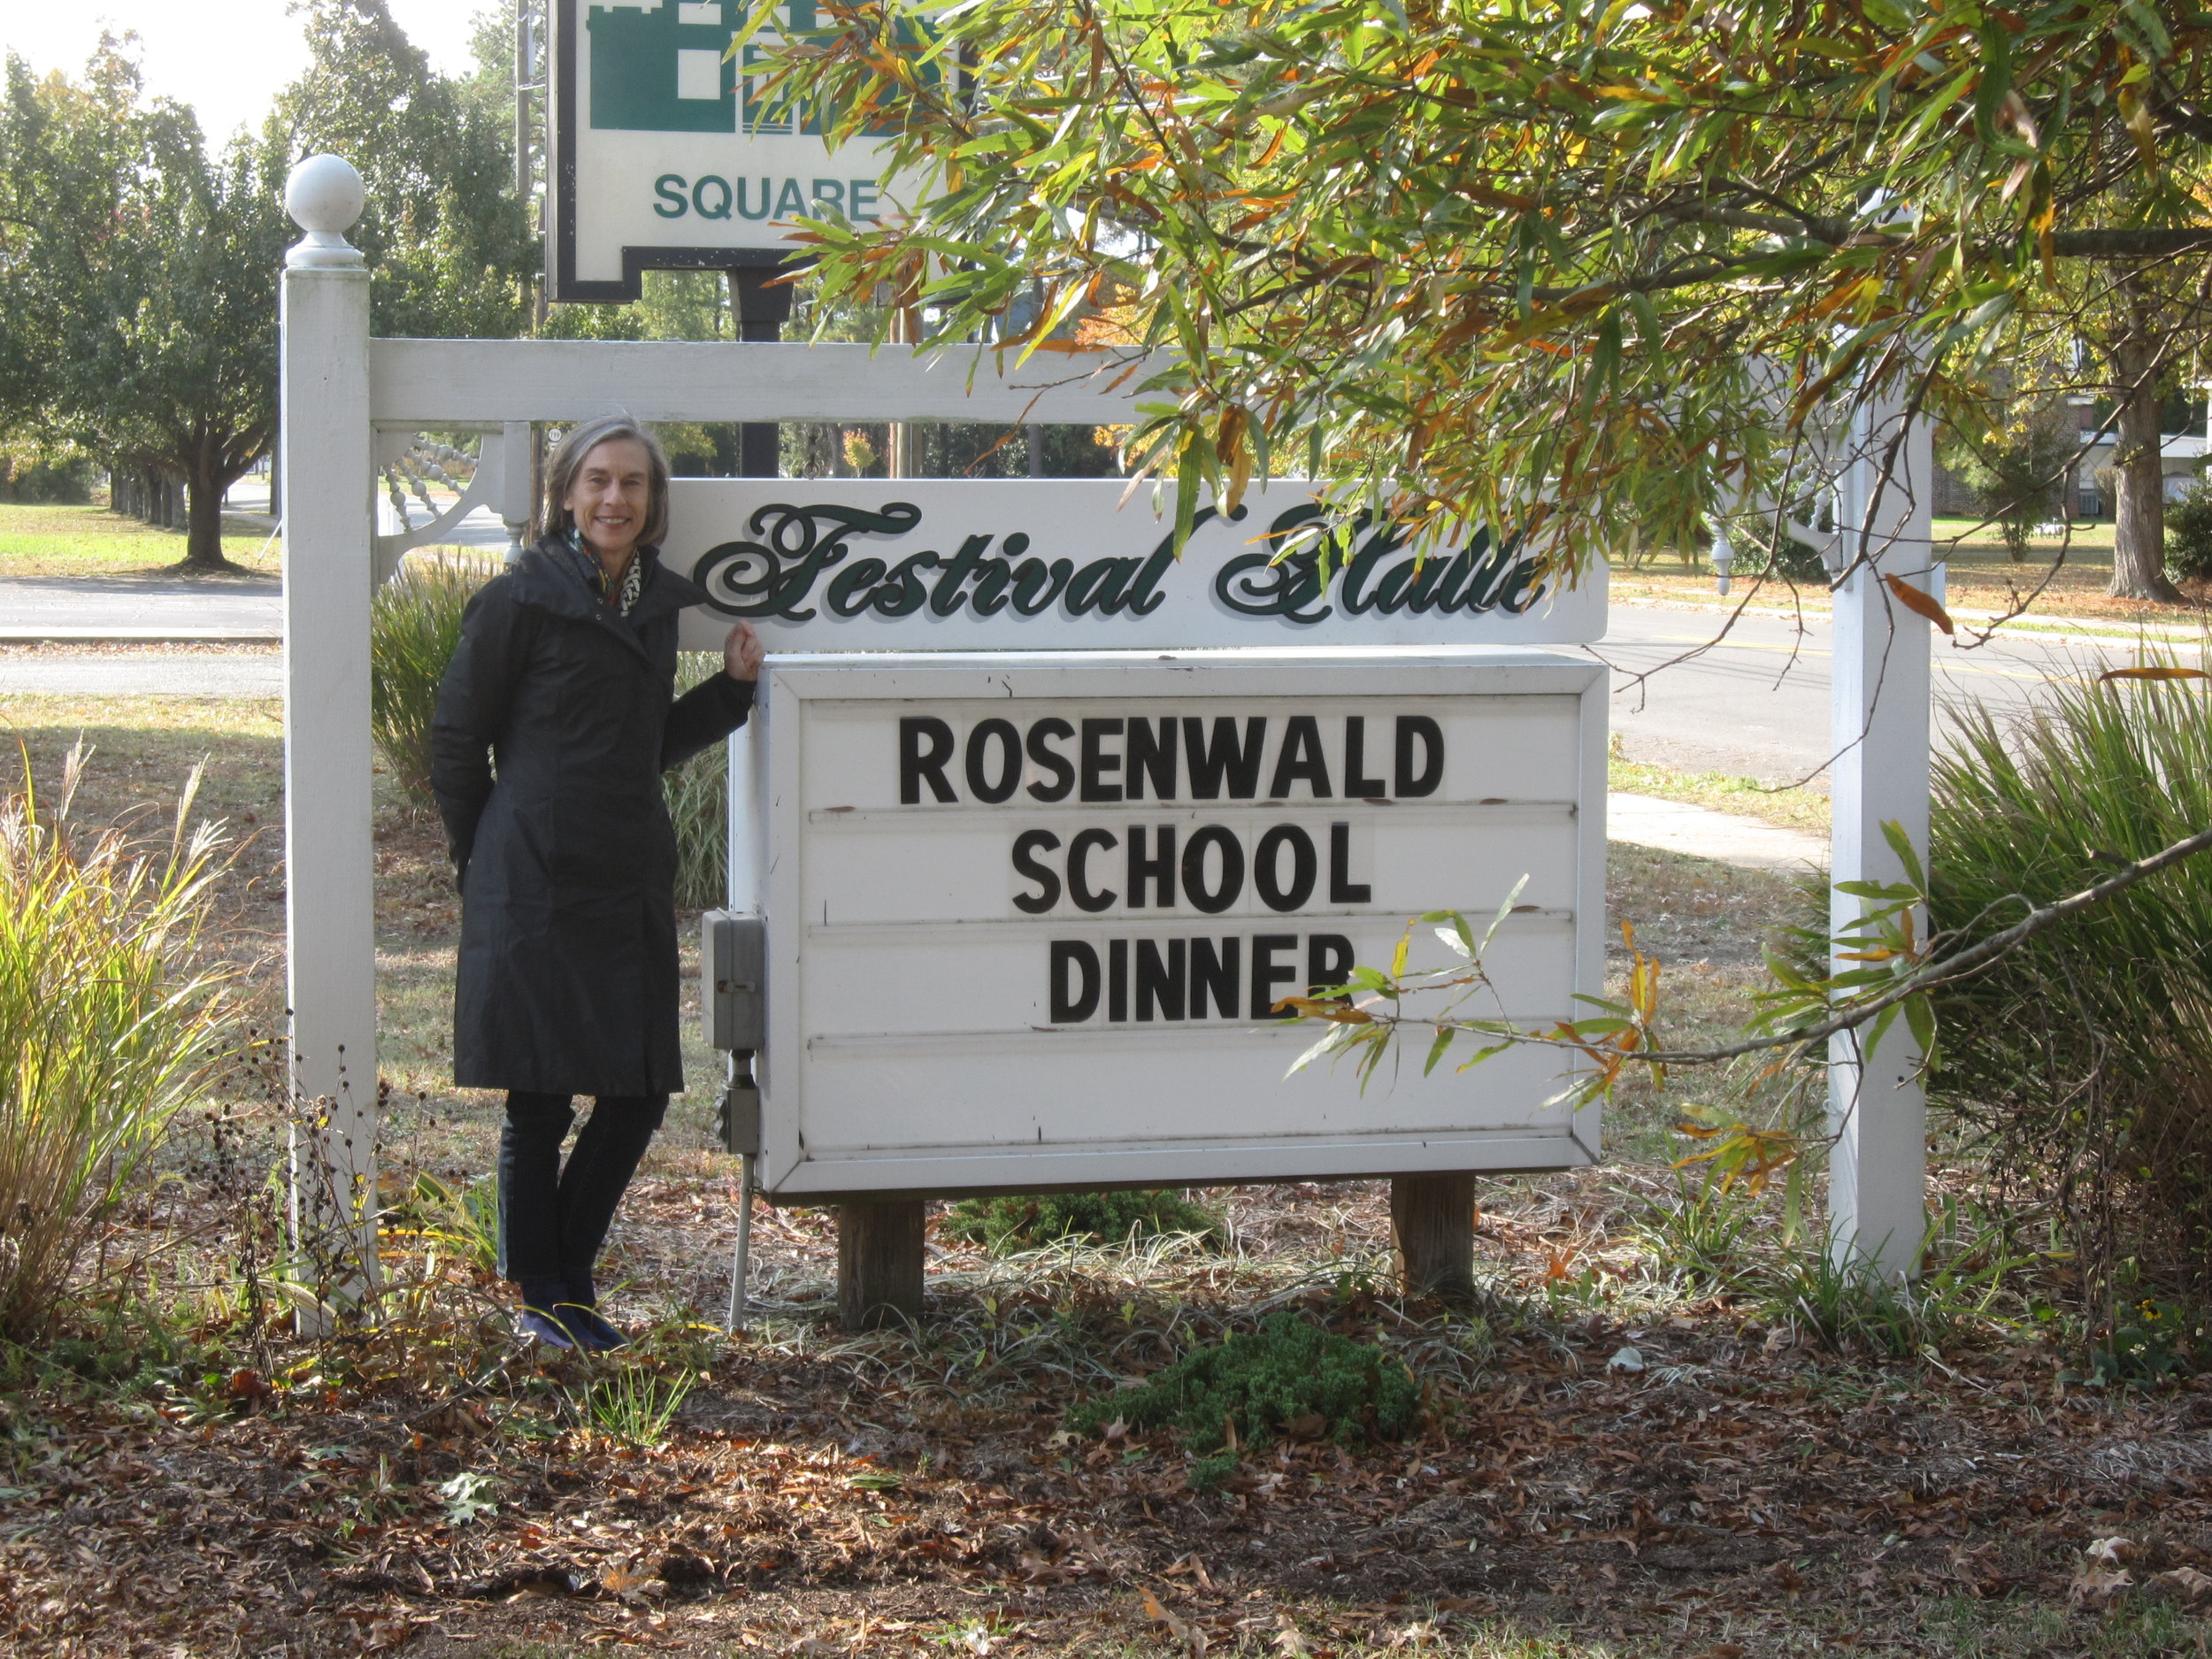 I love Rosenwald school events.  This one was in Reedville, Virginia.